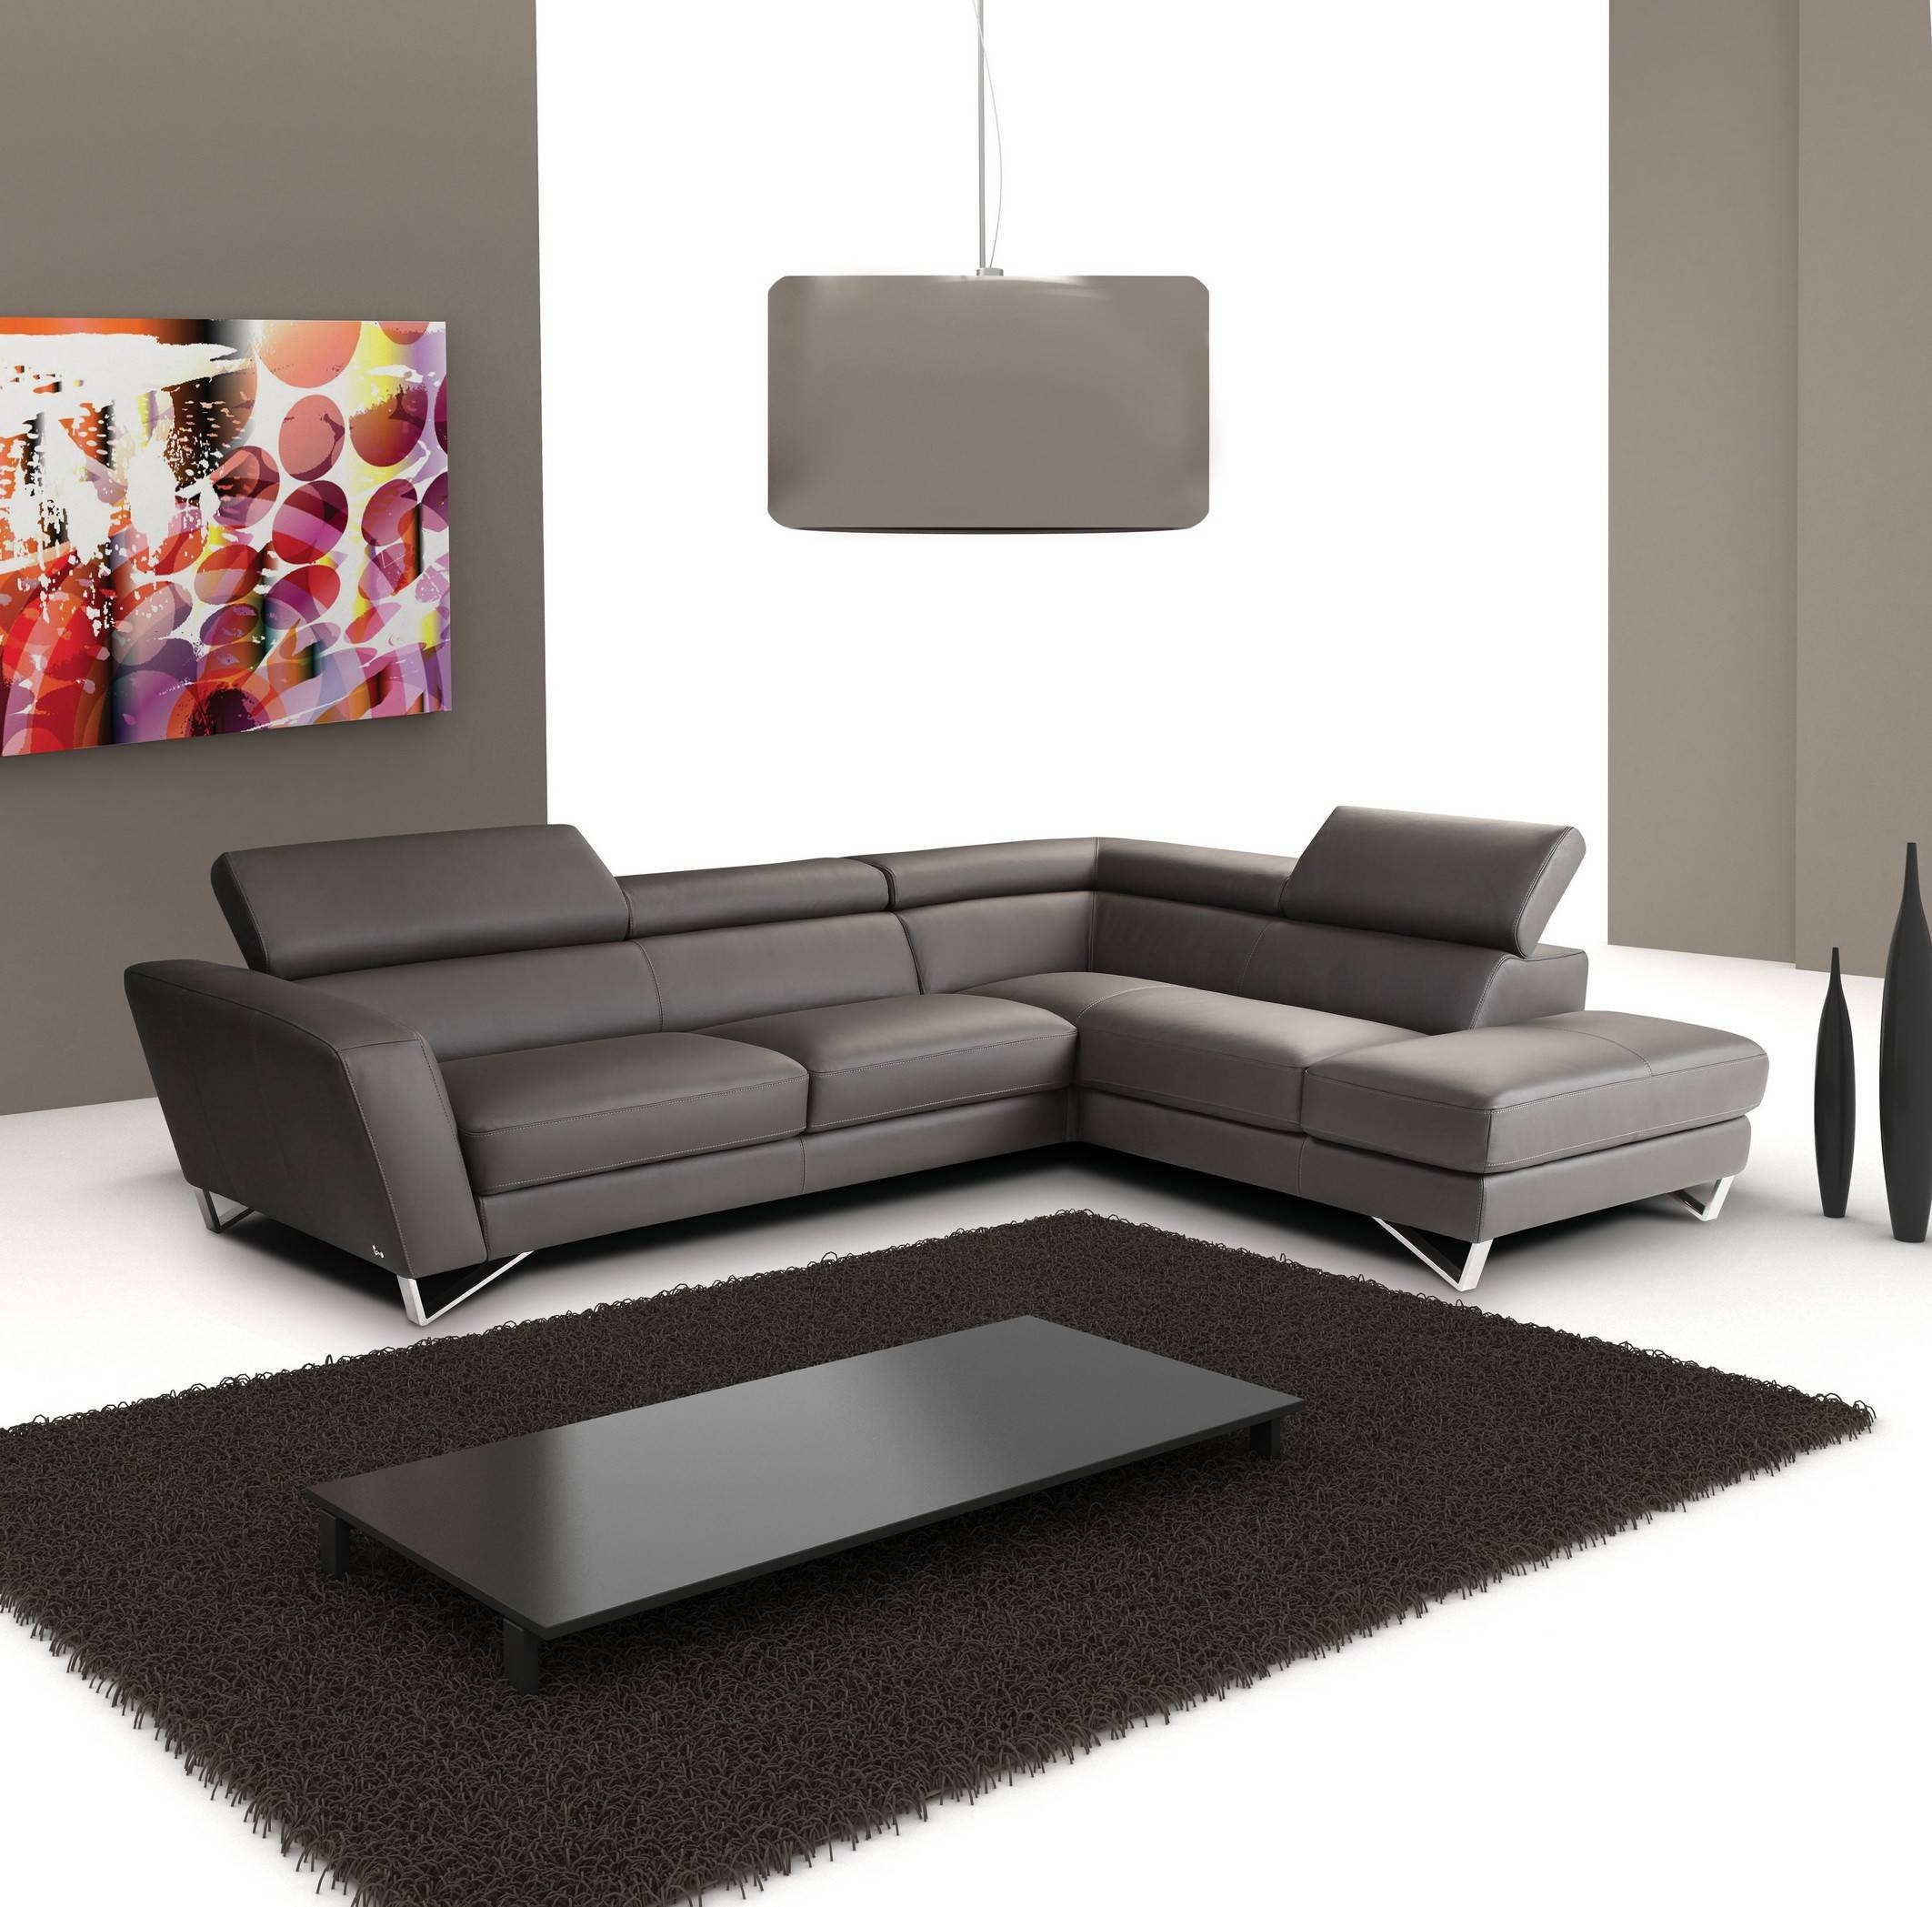 Living Room : Warm Neutral Living Room Design Idea Features Extra with regard to Long Modern Sofas (Image 15 of 30)